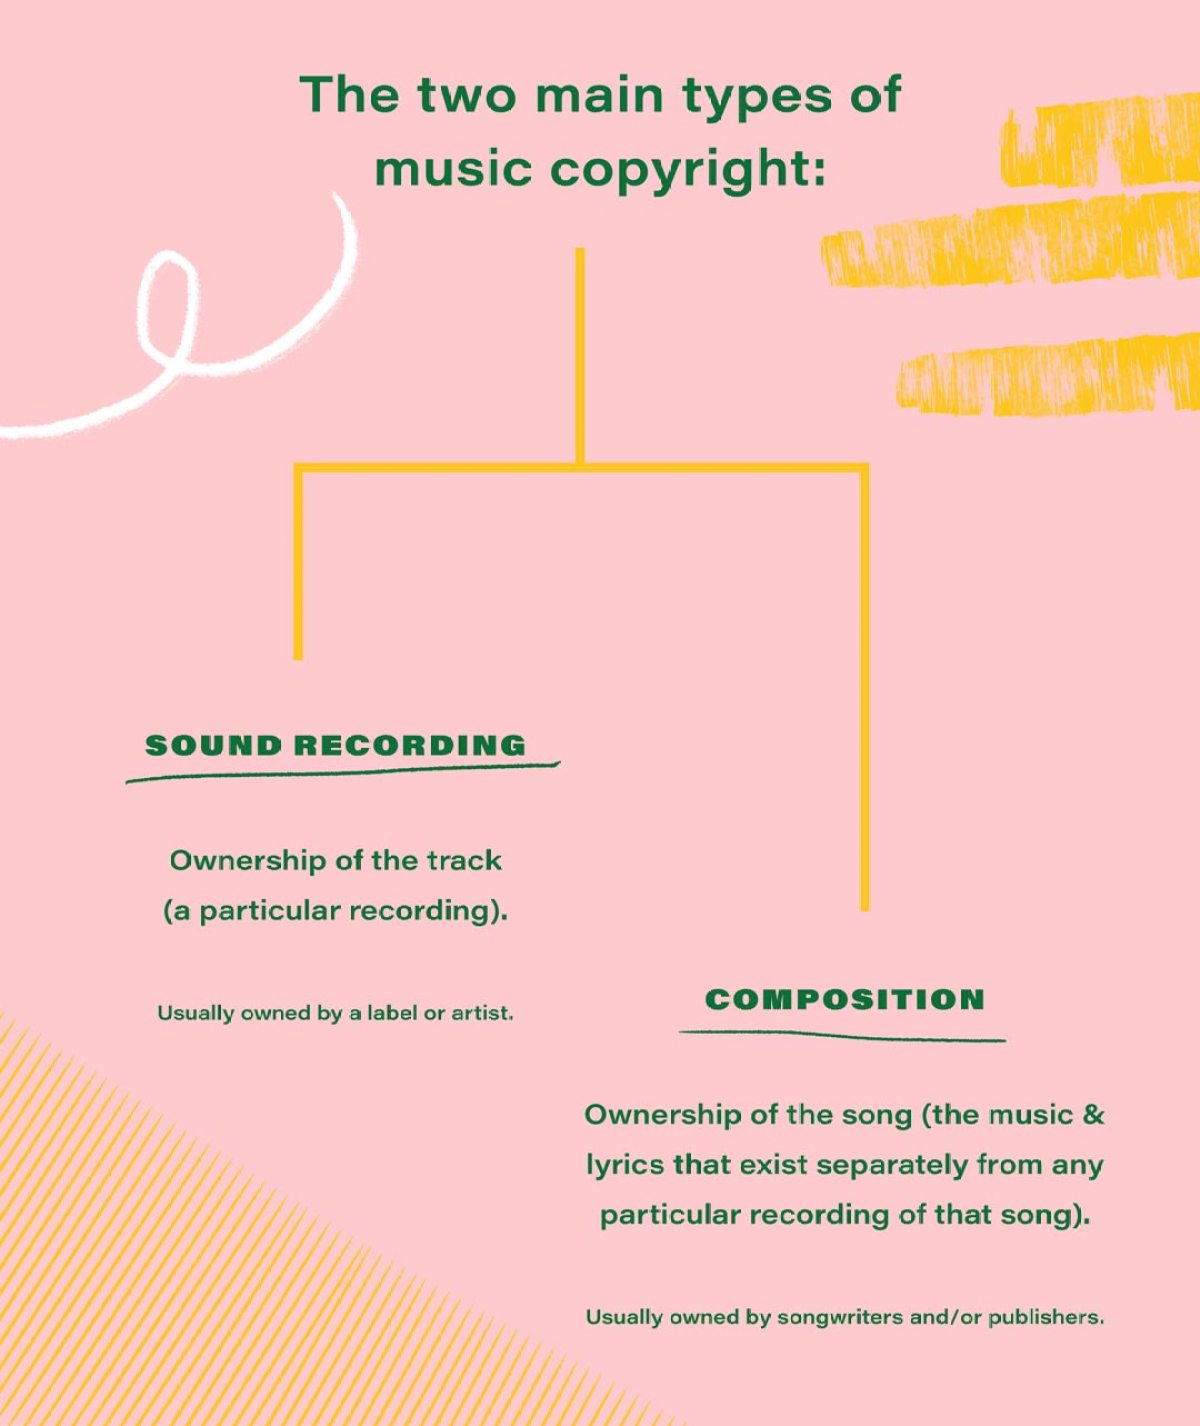 The two main types of copyright for music